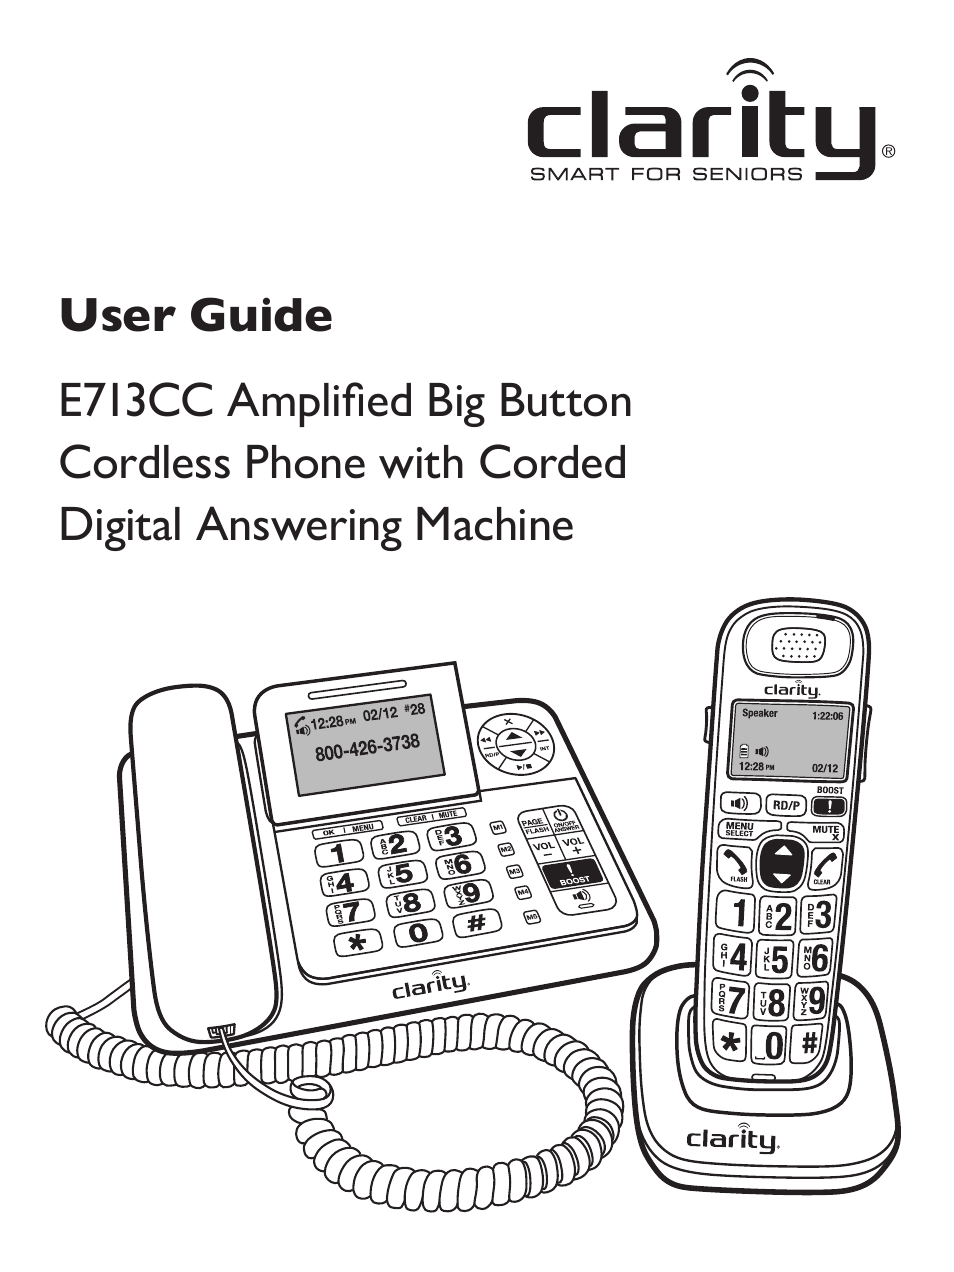 Clarity Amplified Big Button Cordless Phone with Corded